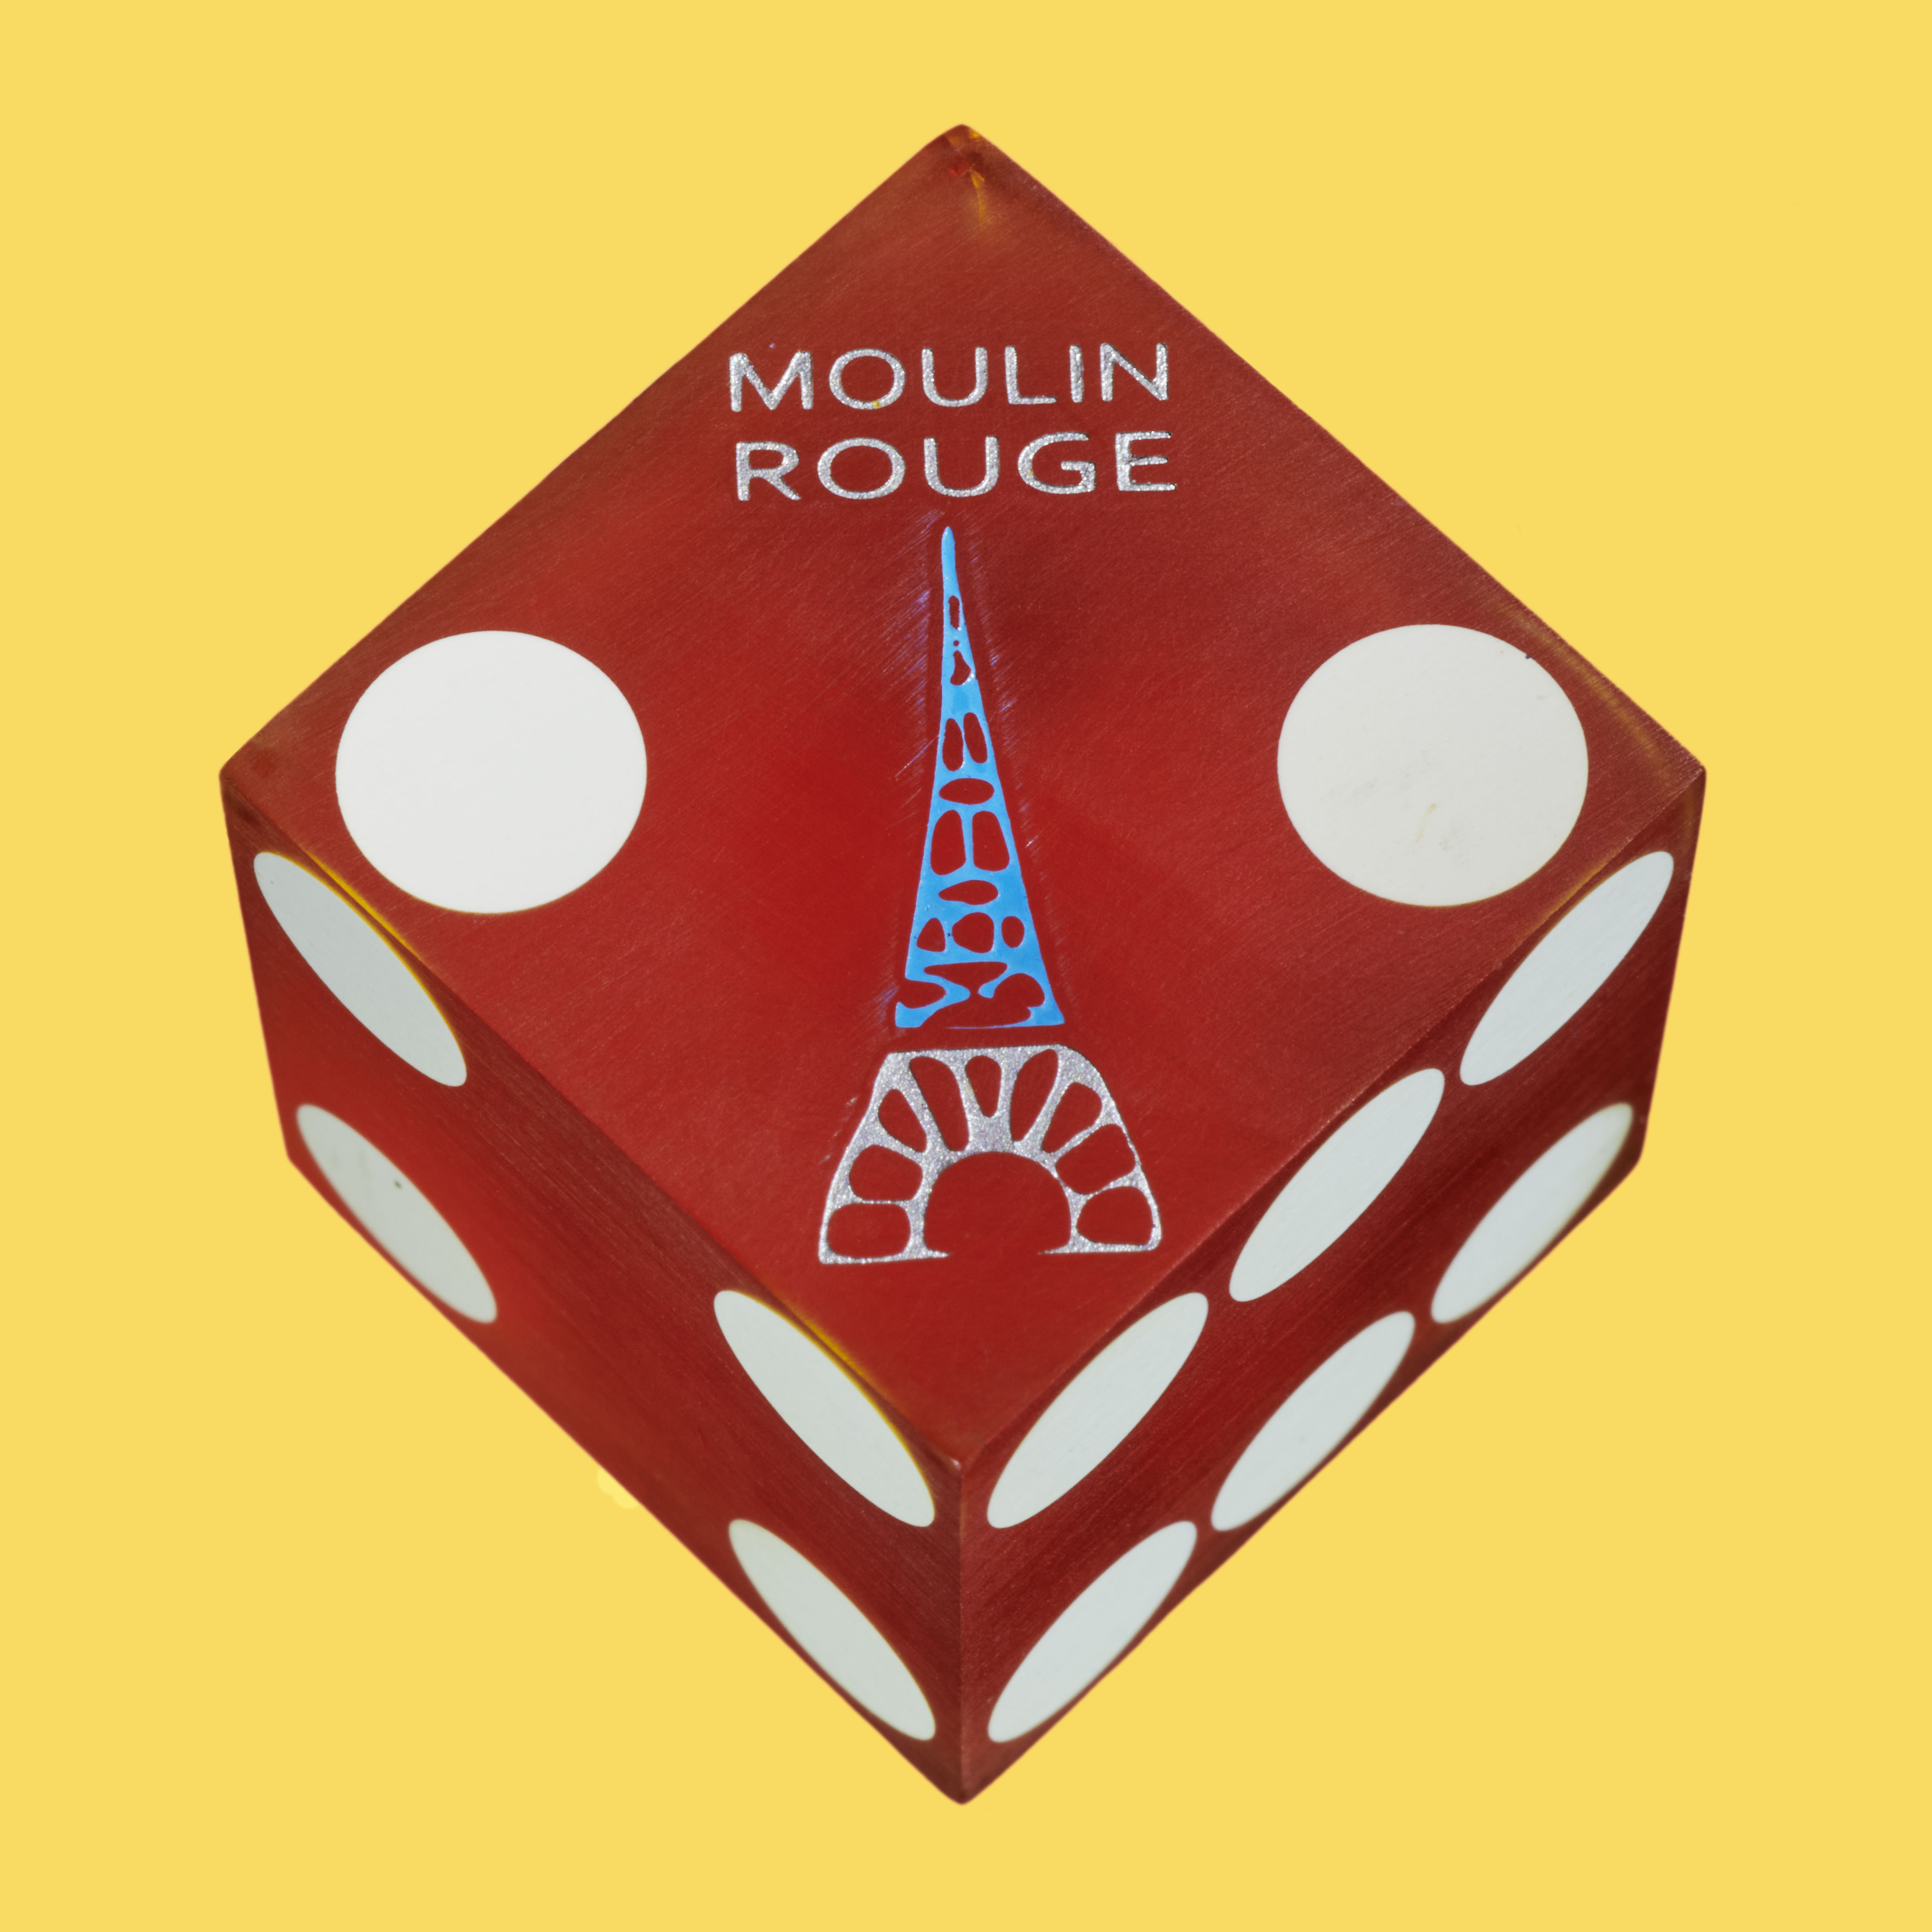 Moulin_Rouge_1006_SFW